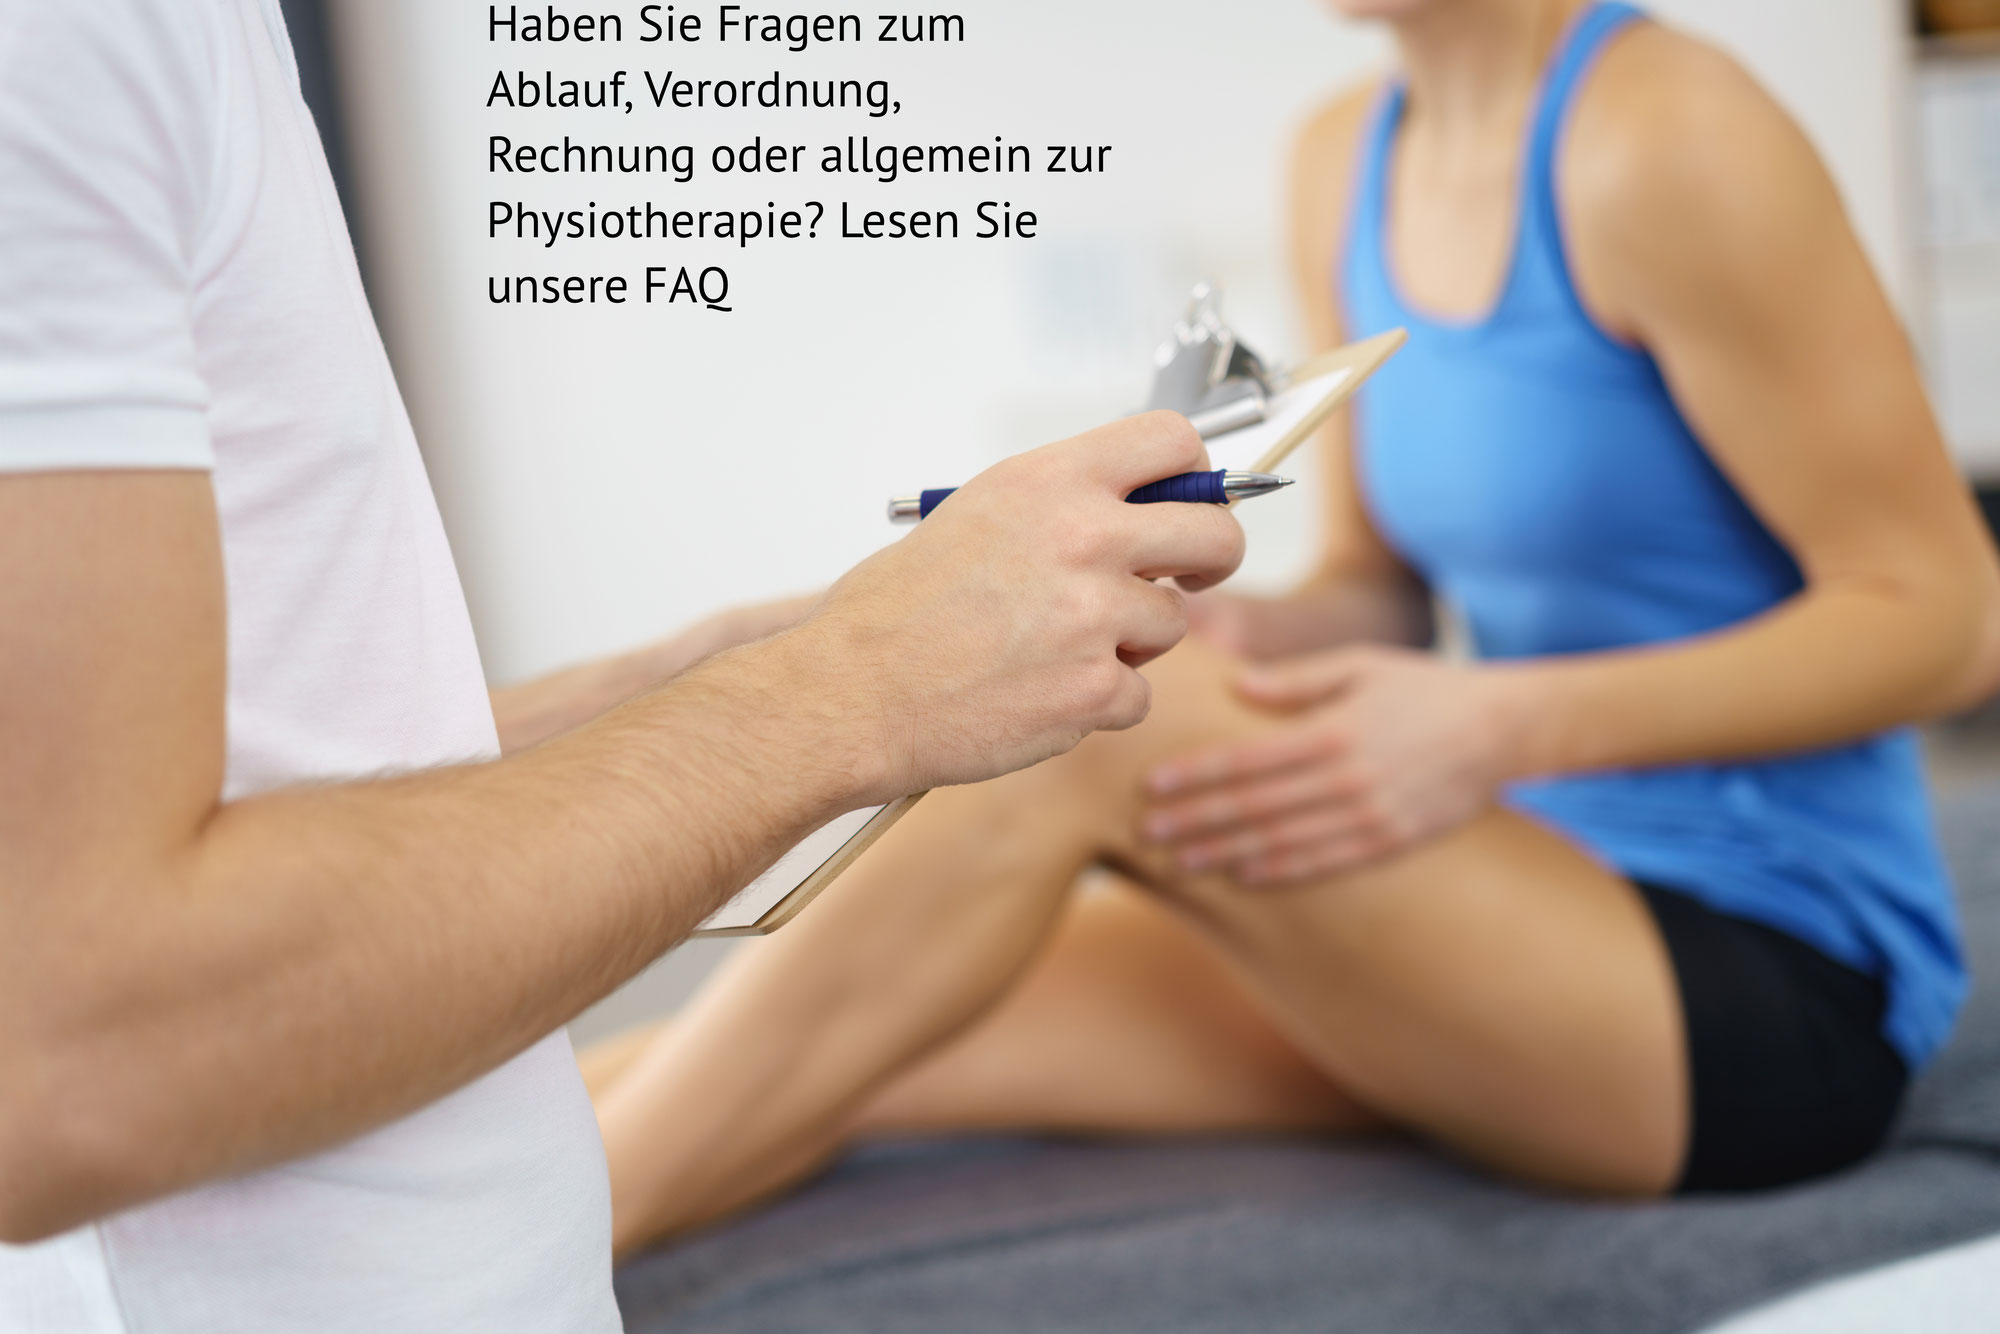 FAQ Physiotherapie Basel Santewell